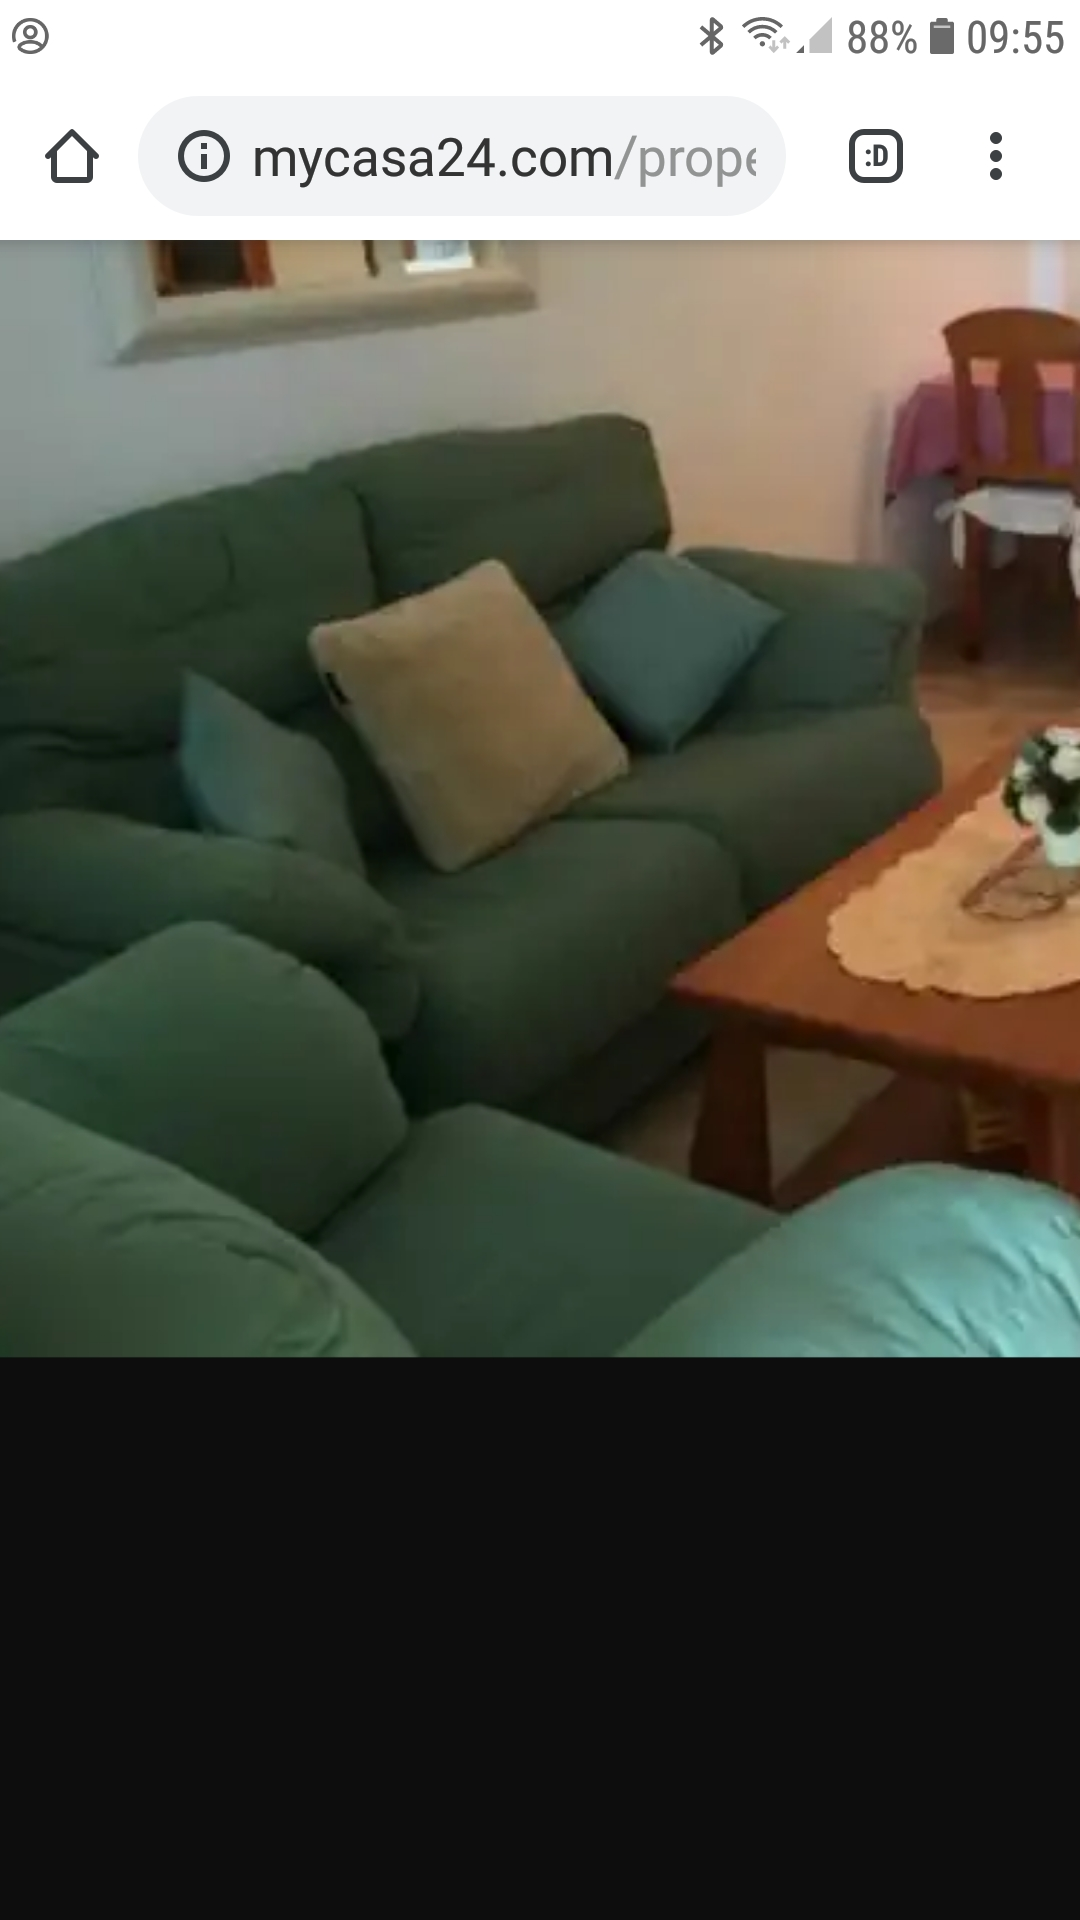 For sale: Sofa and chair - Buy and sell items in Orihuela